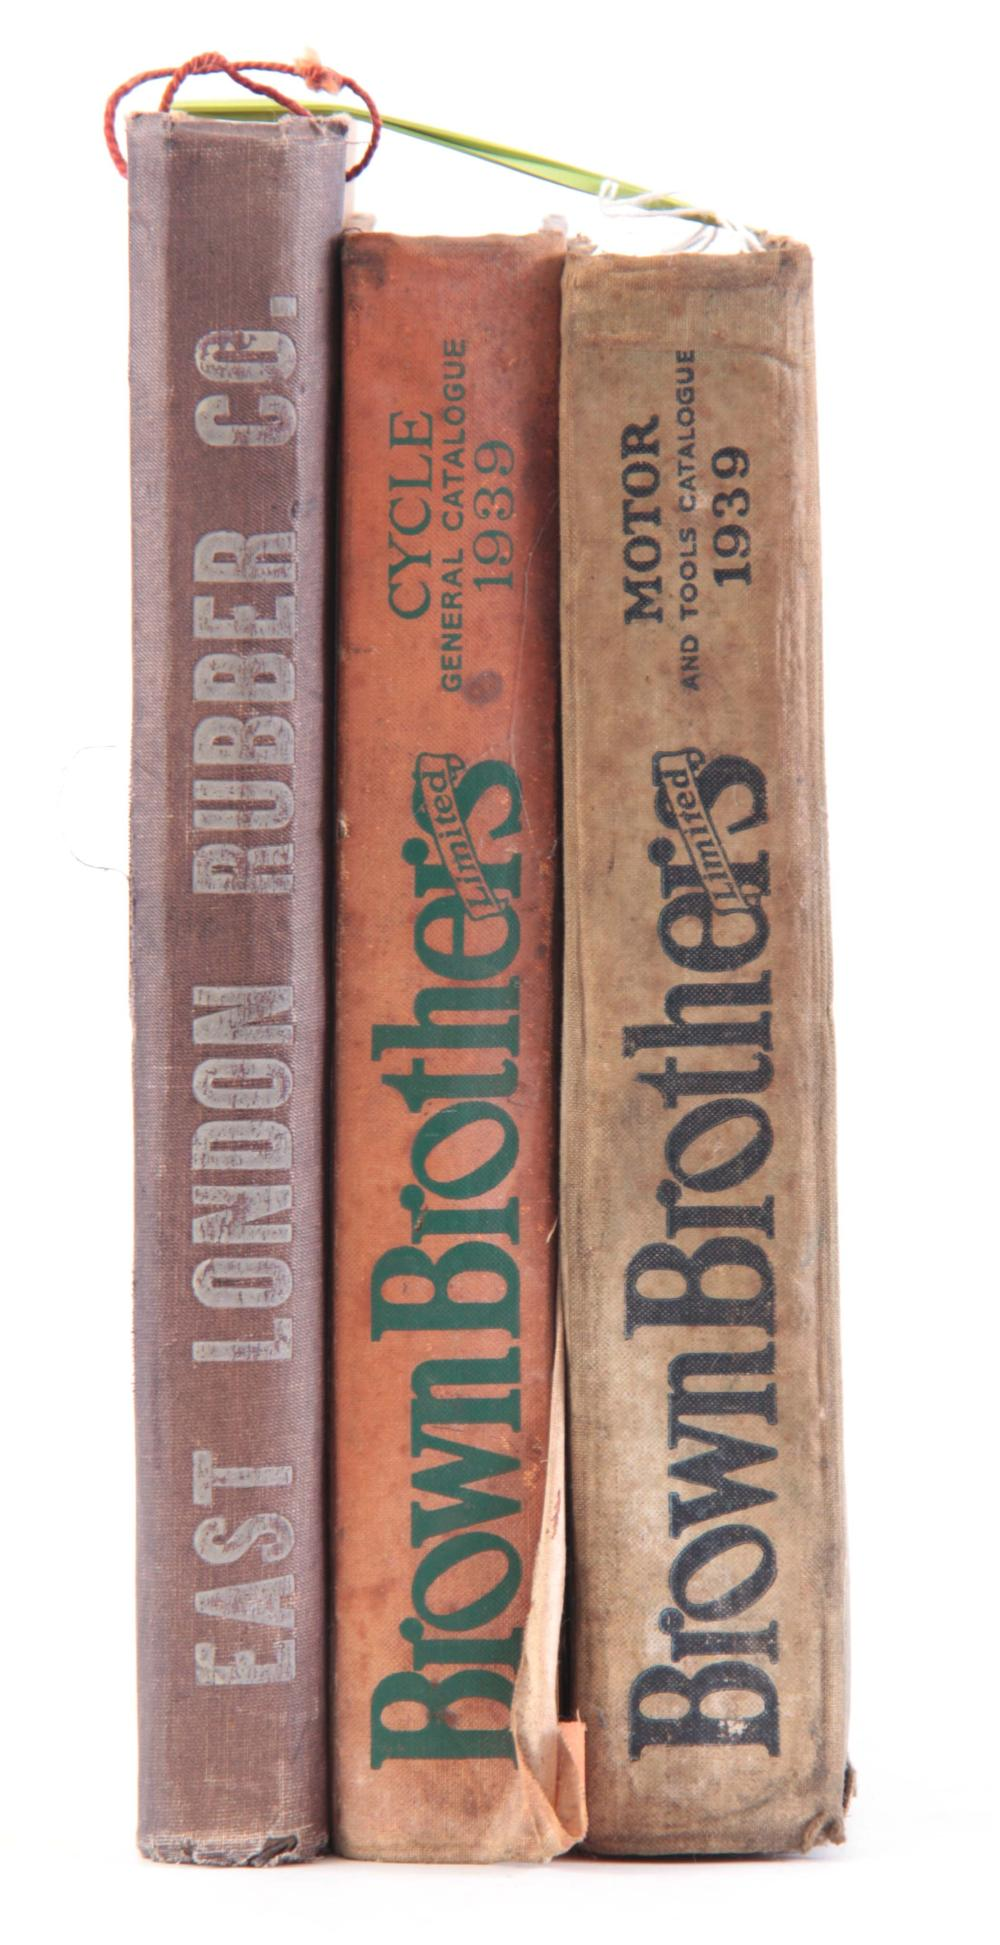 A COLLECTION OF 3 CATALOGUES including, MOTOR CATA